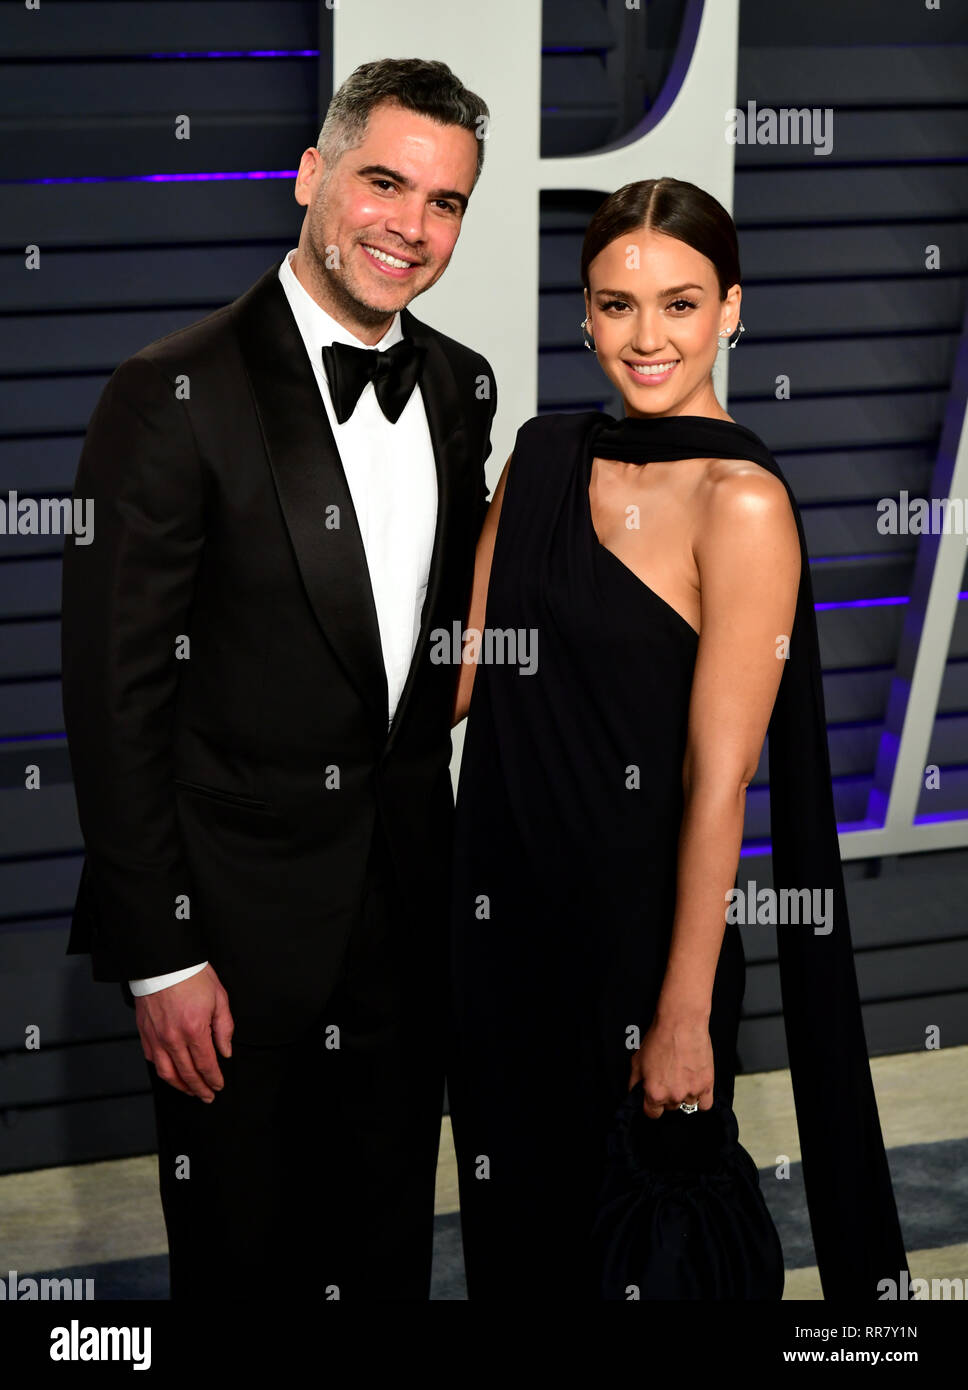 7294ebbb044 Cash Warren and Jessica Alba attending the Vanity Fair Oscar Party held at  the Wallis Annenberg Center for the Performing Arts in Beverly Hills